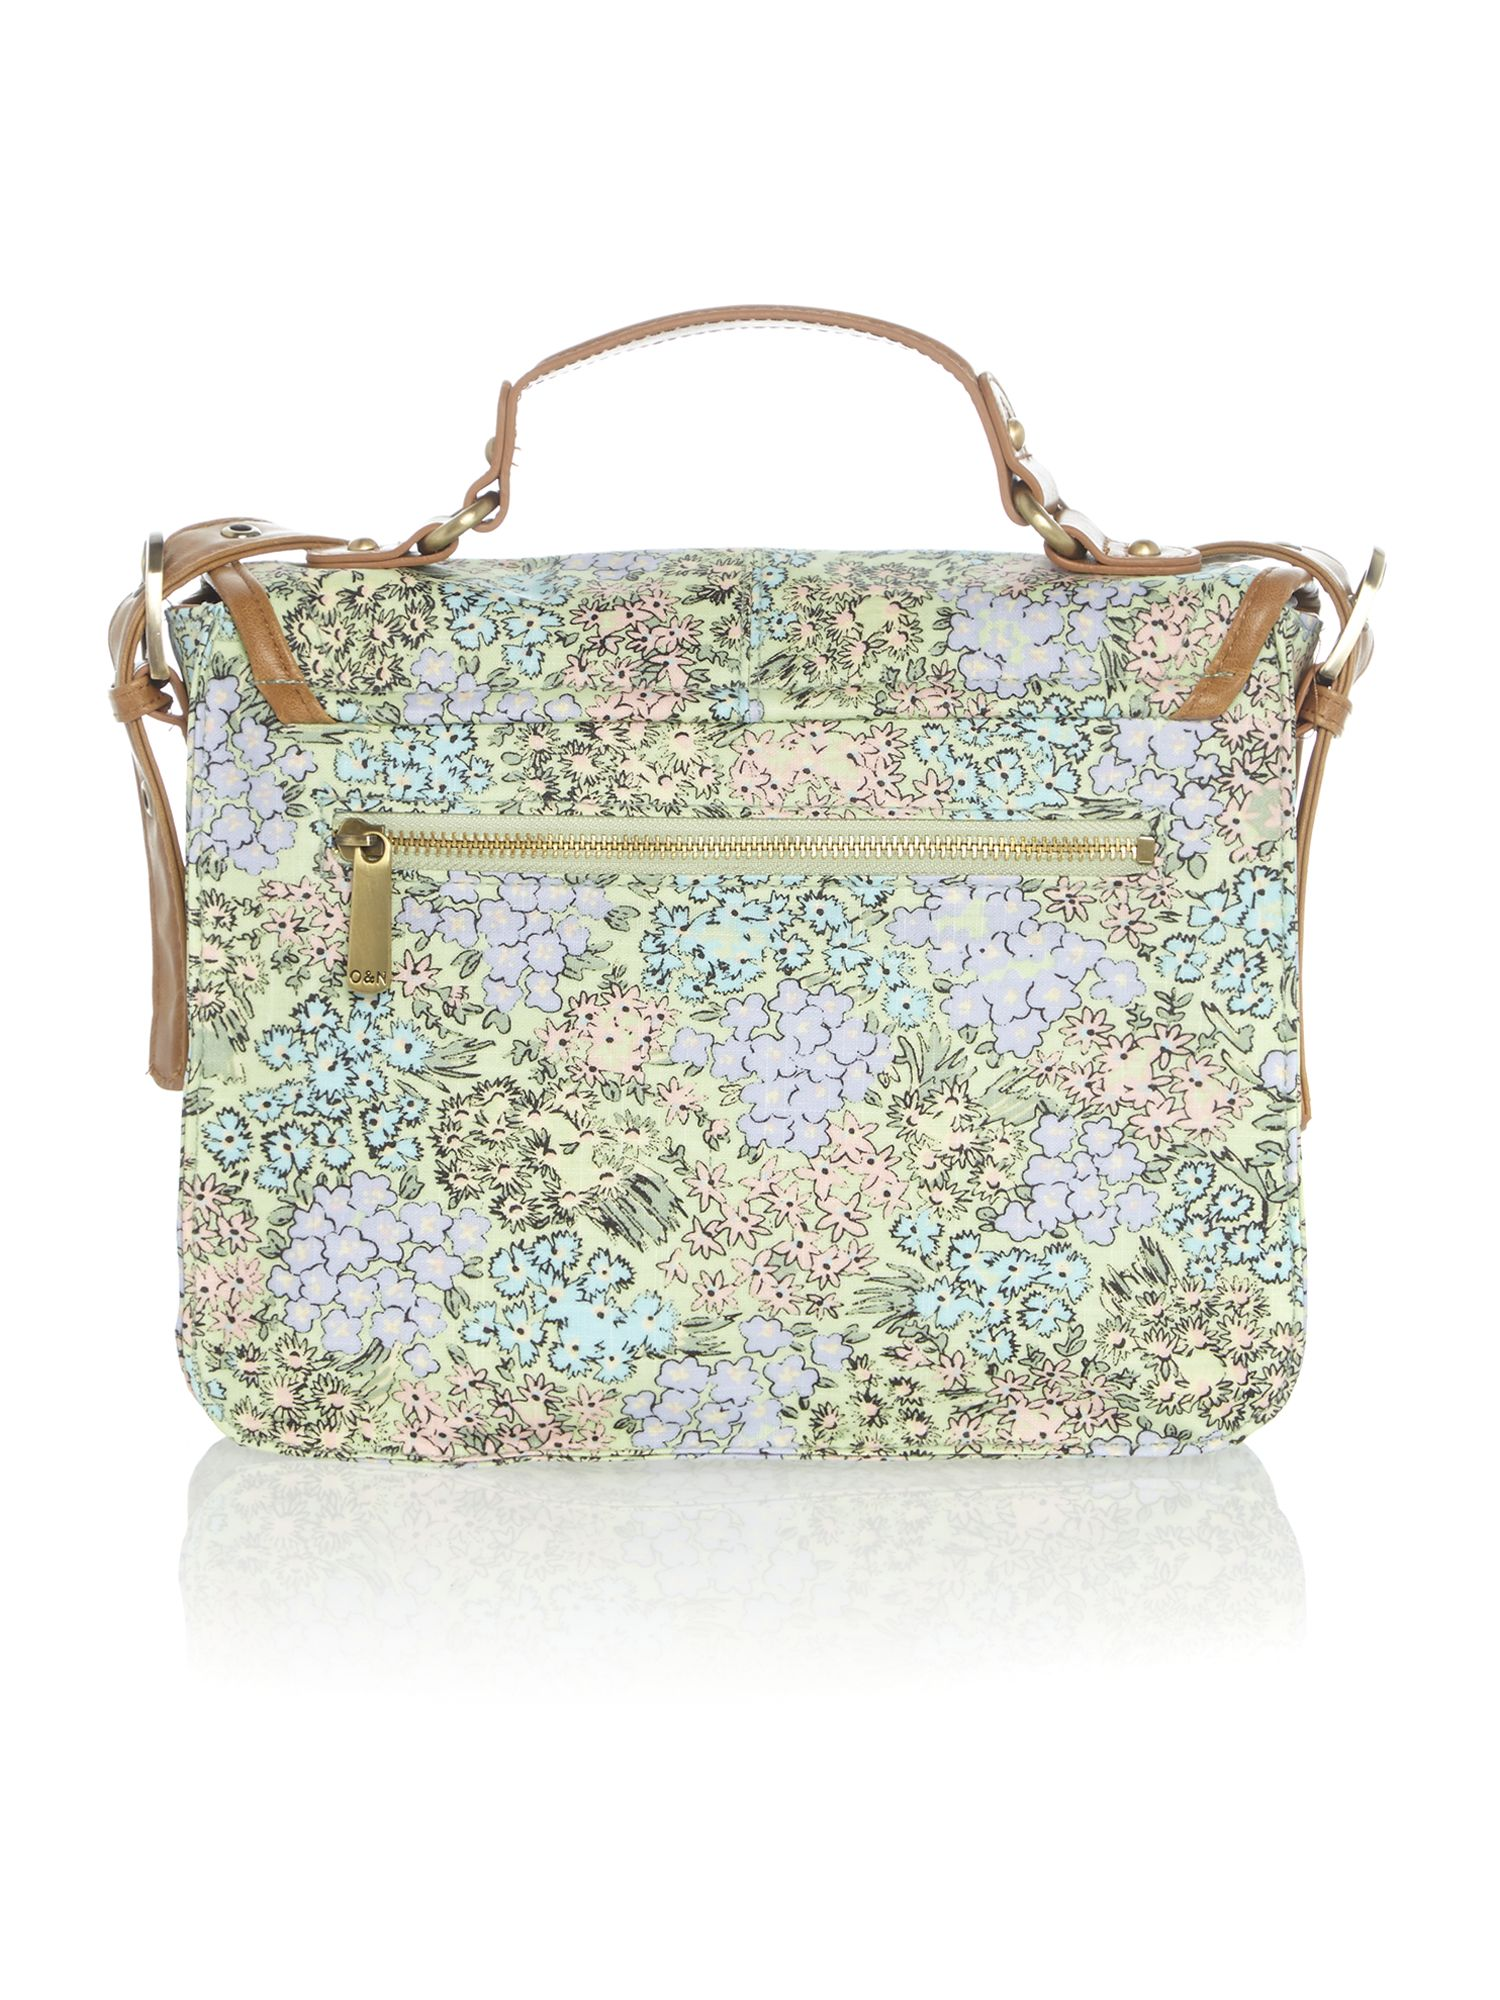 Busy lizzie multi-coloured satchel bag